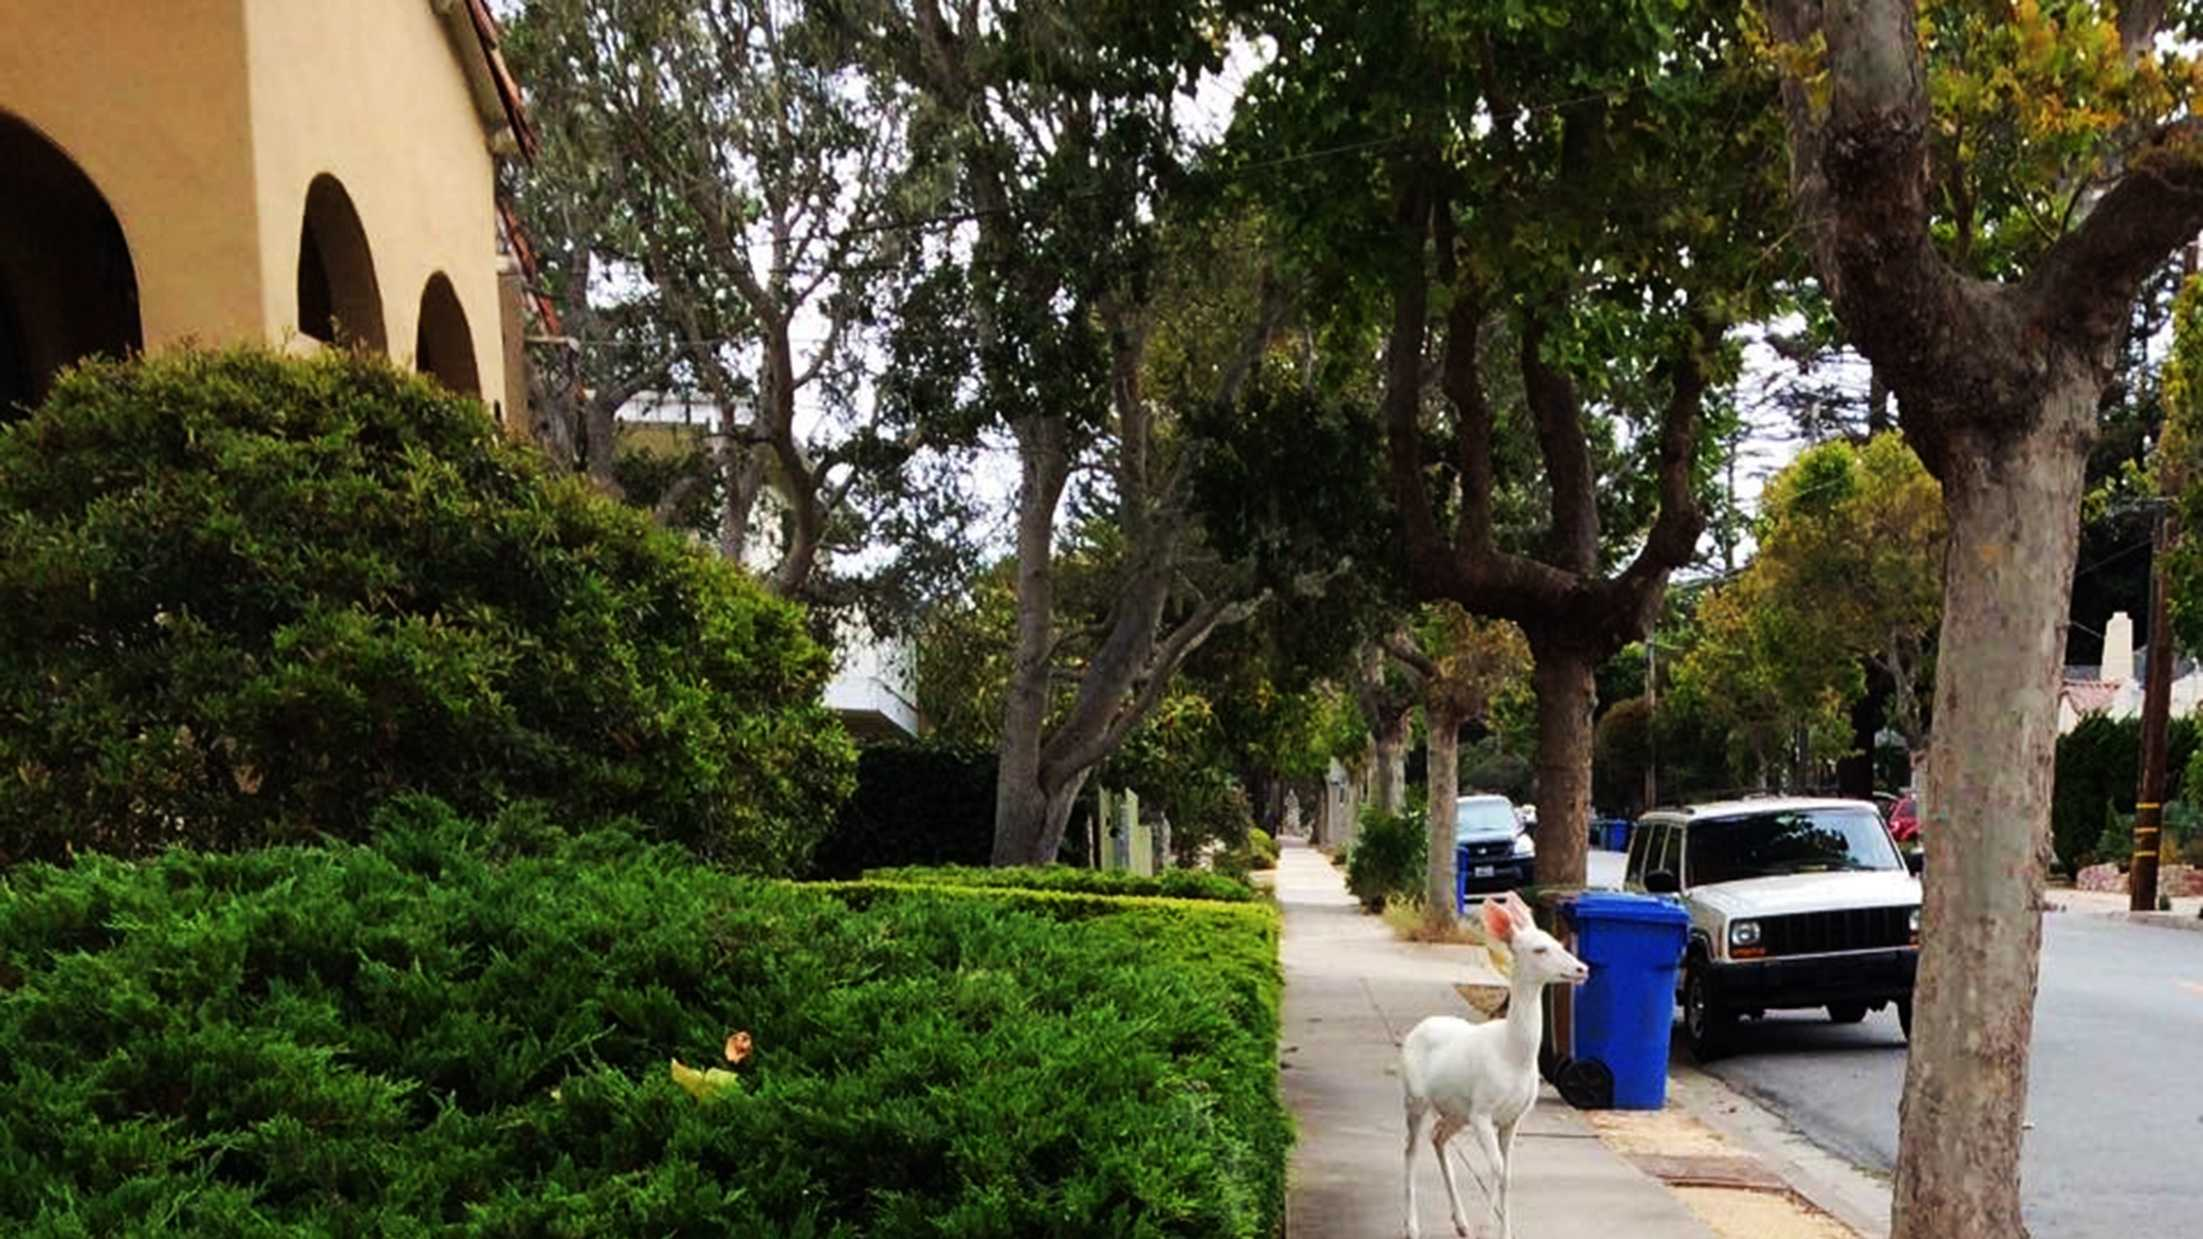 A rare white deer is seen walking down the sidewalk. (May 2015)